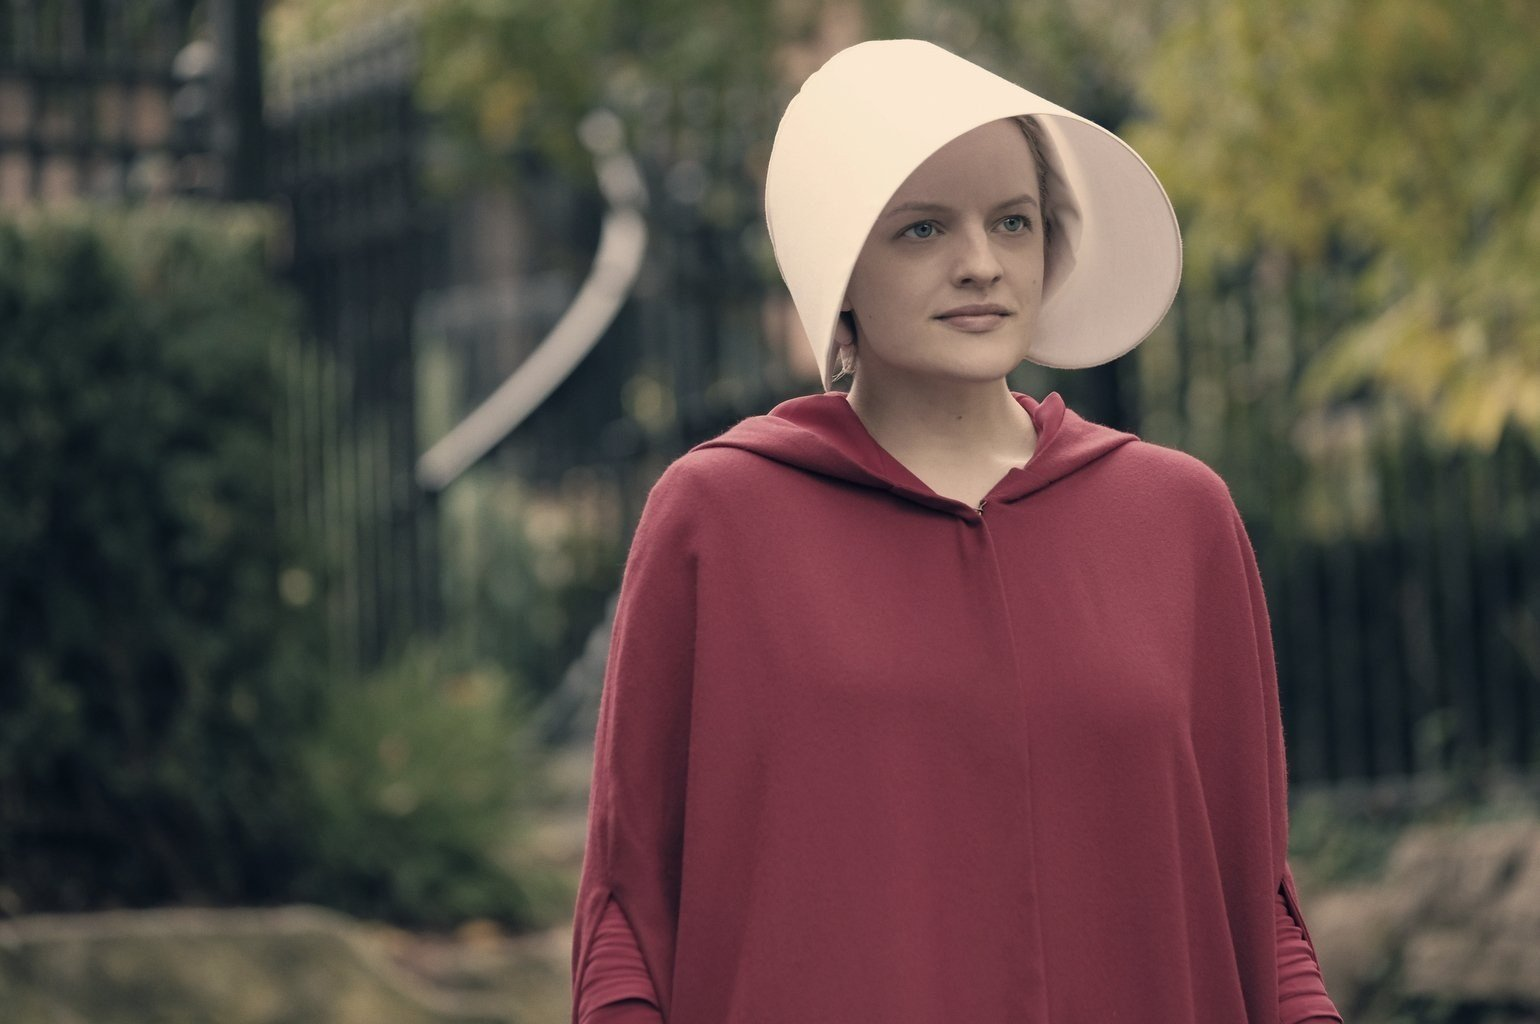 The Handmaid's Tale and its alarming relevance in the Trump era